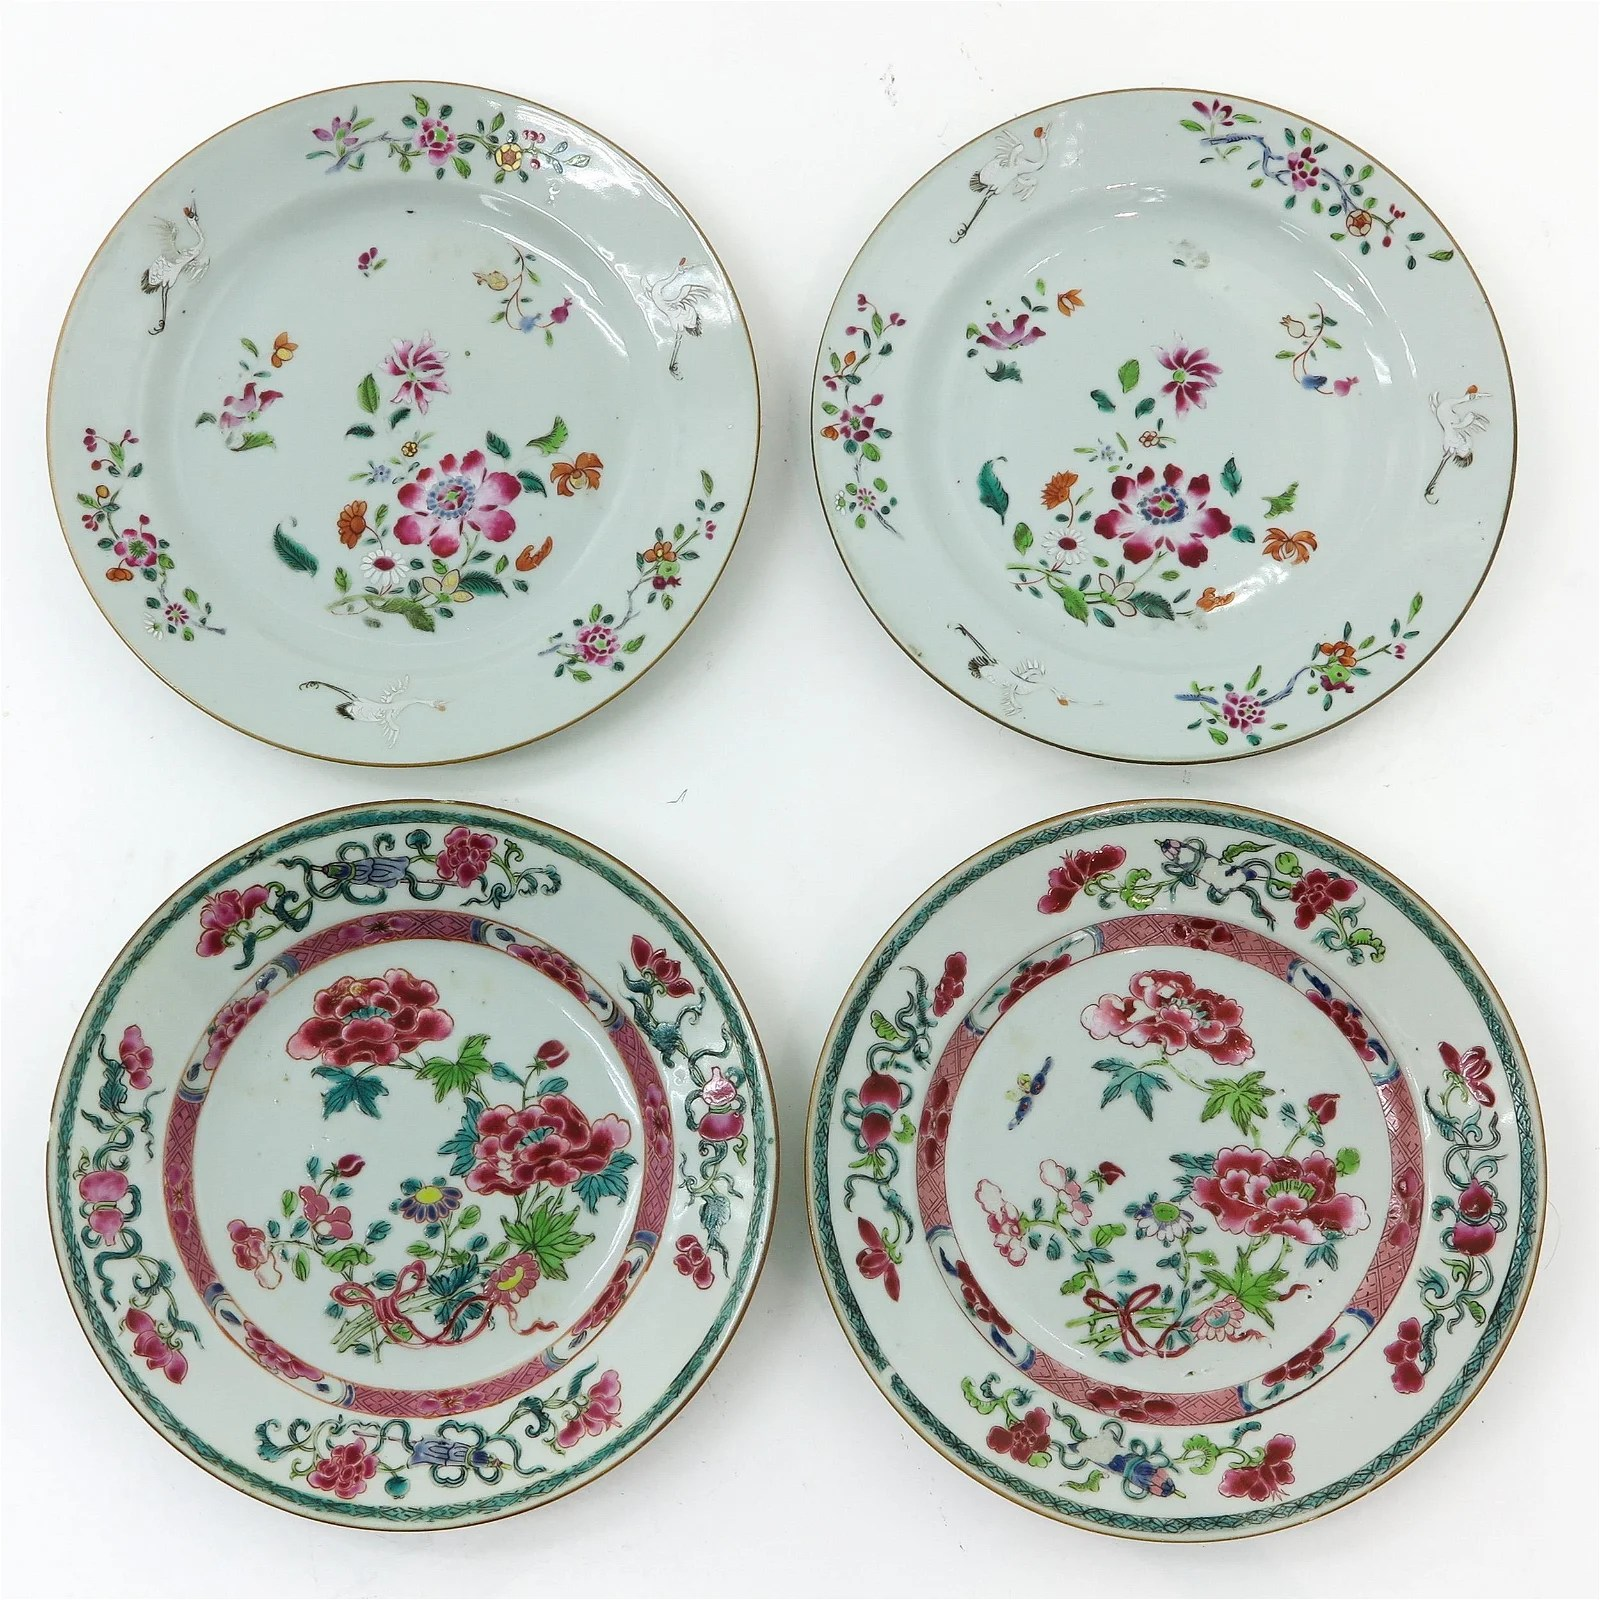 A Series of Four Famille Rose Plates